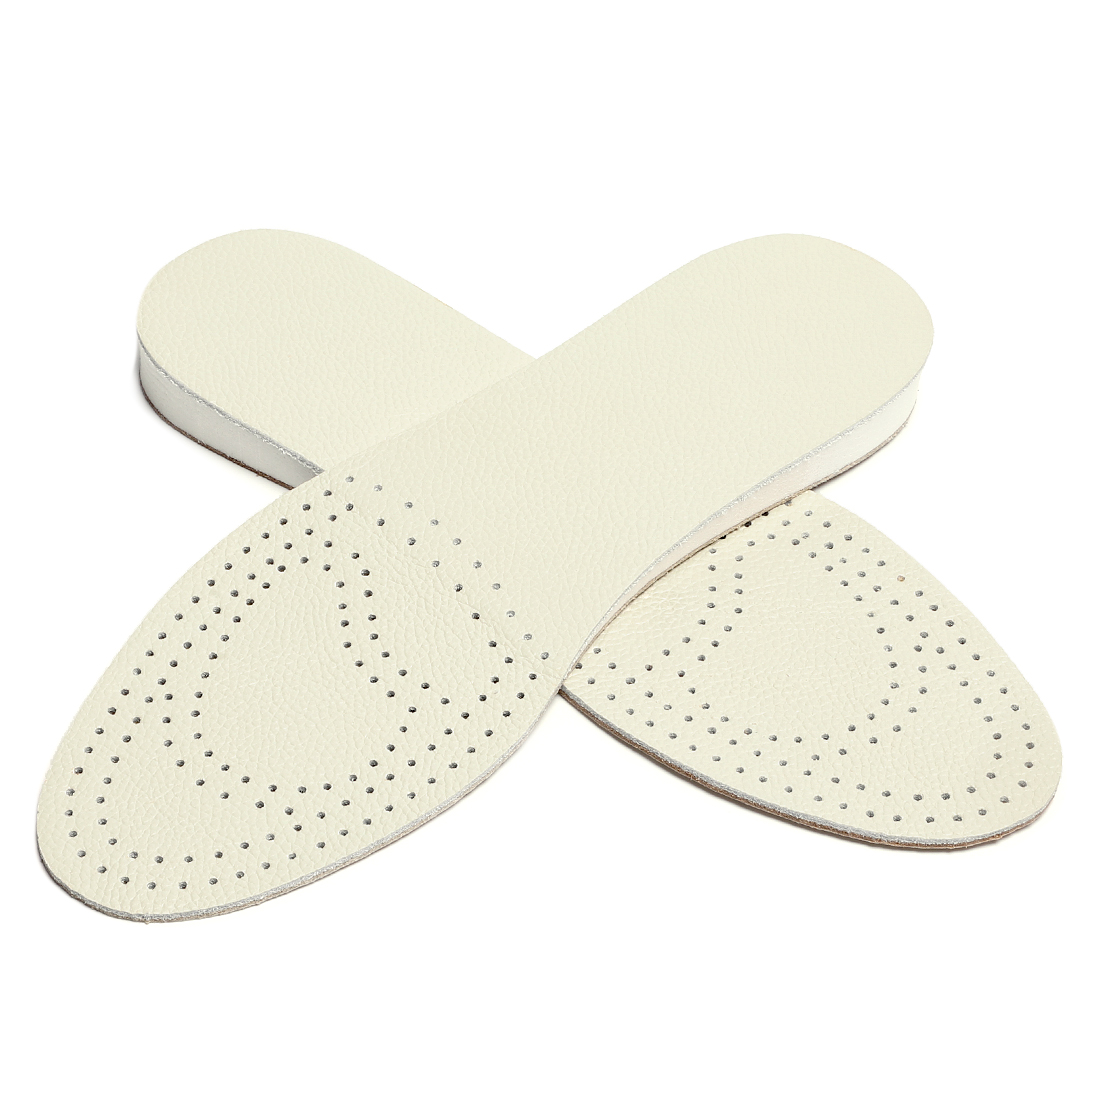 """Women Men Leather Insole Breathable Pad Height Increase W9/M7 5/8"""" High White"""